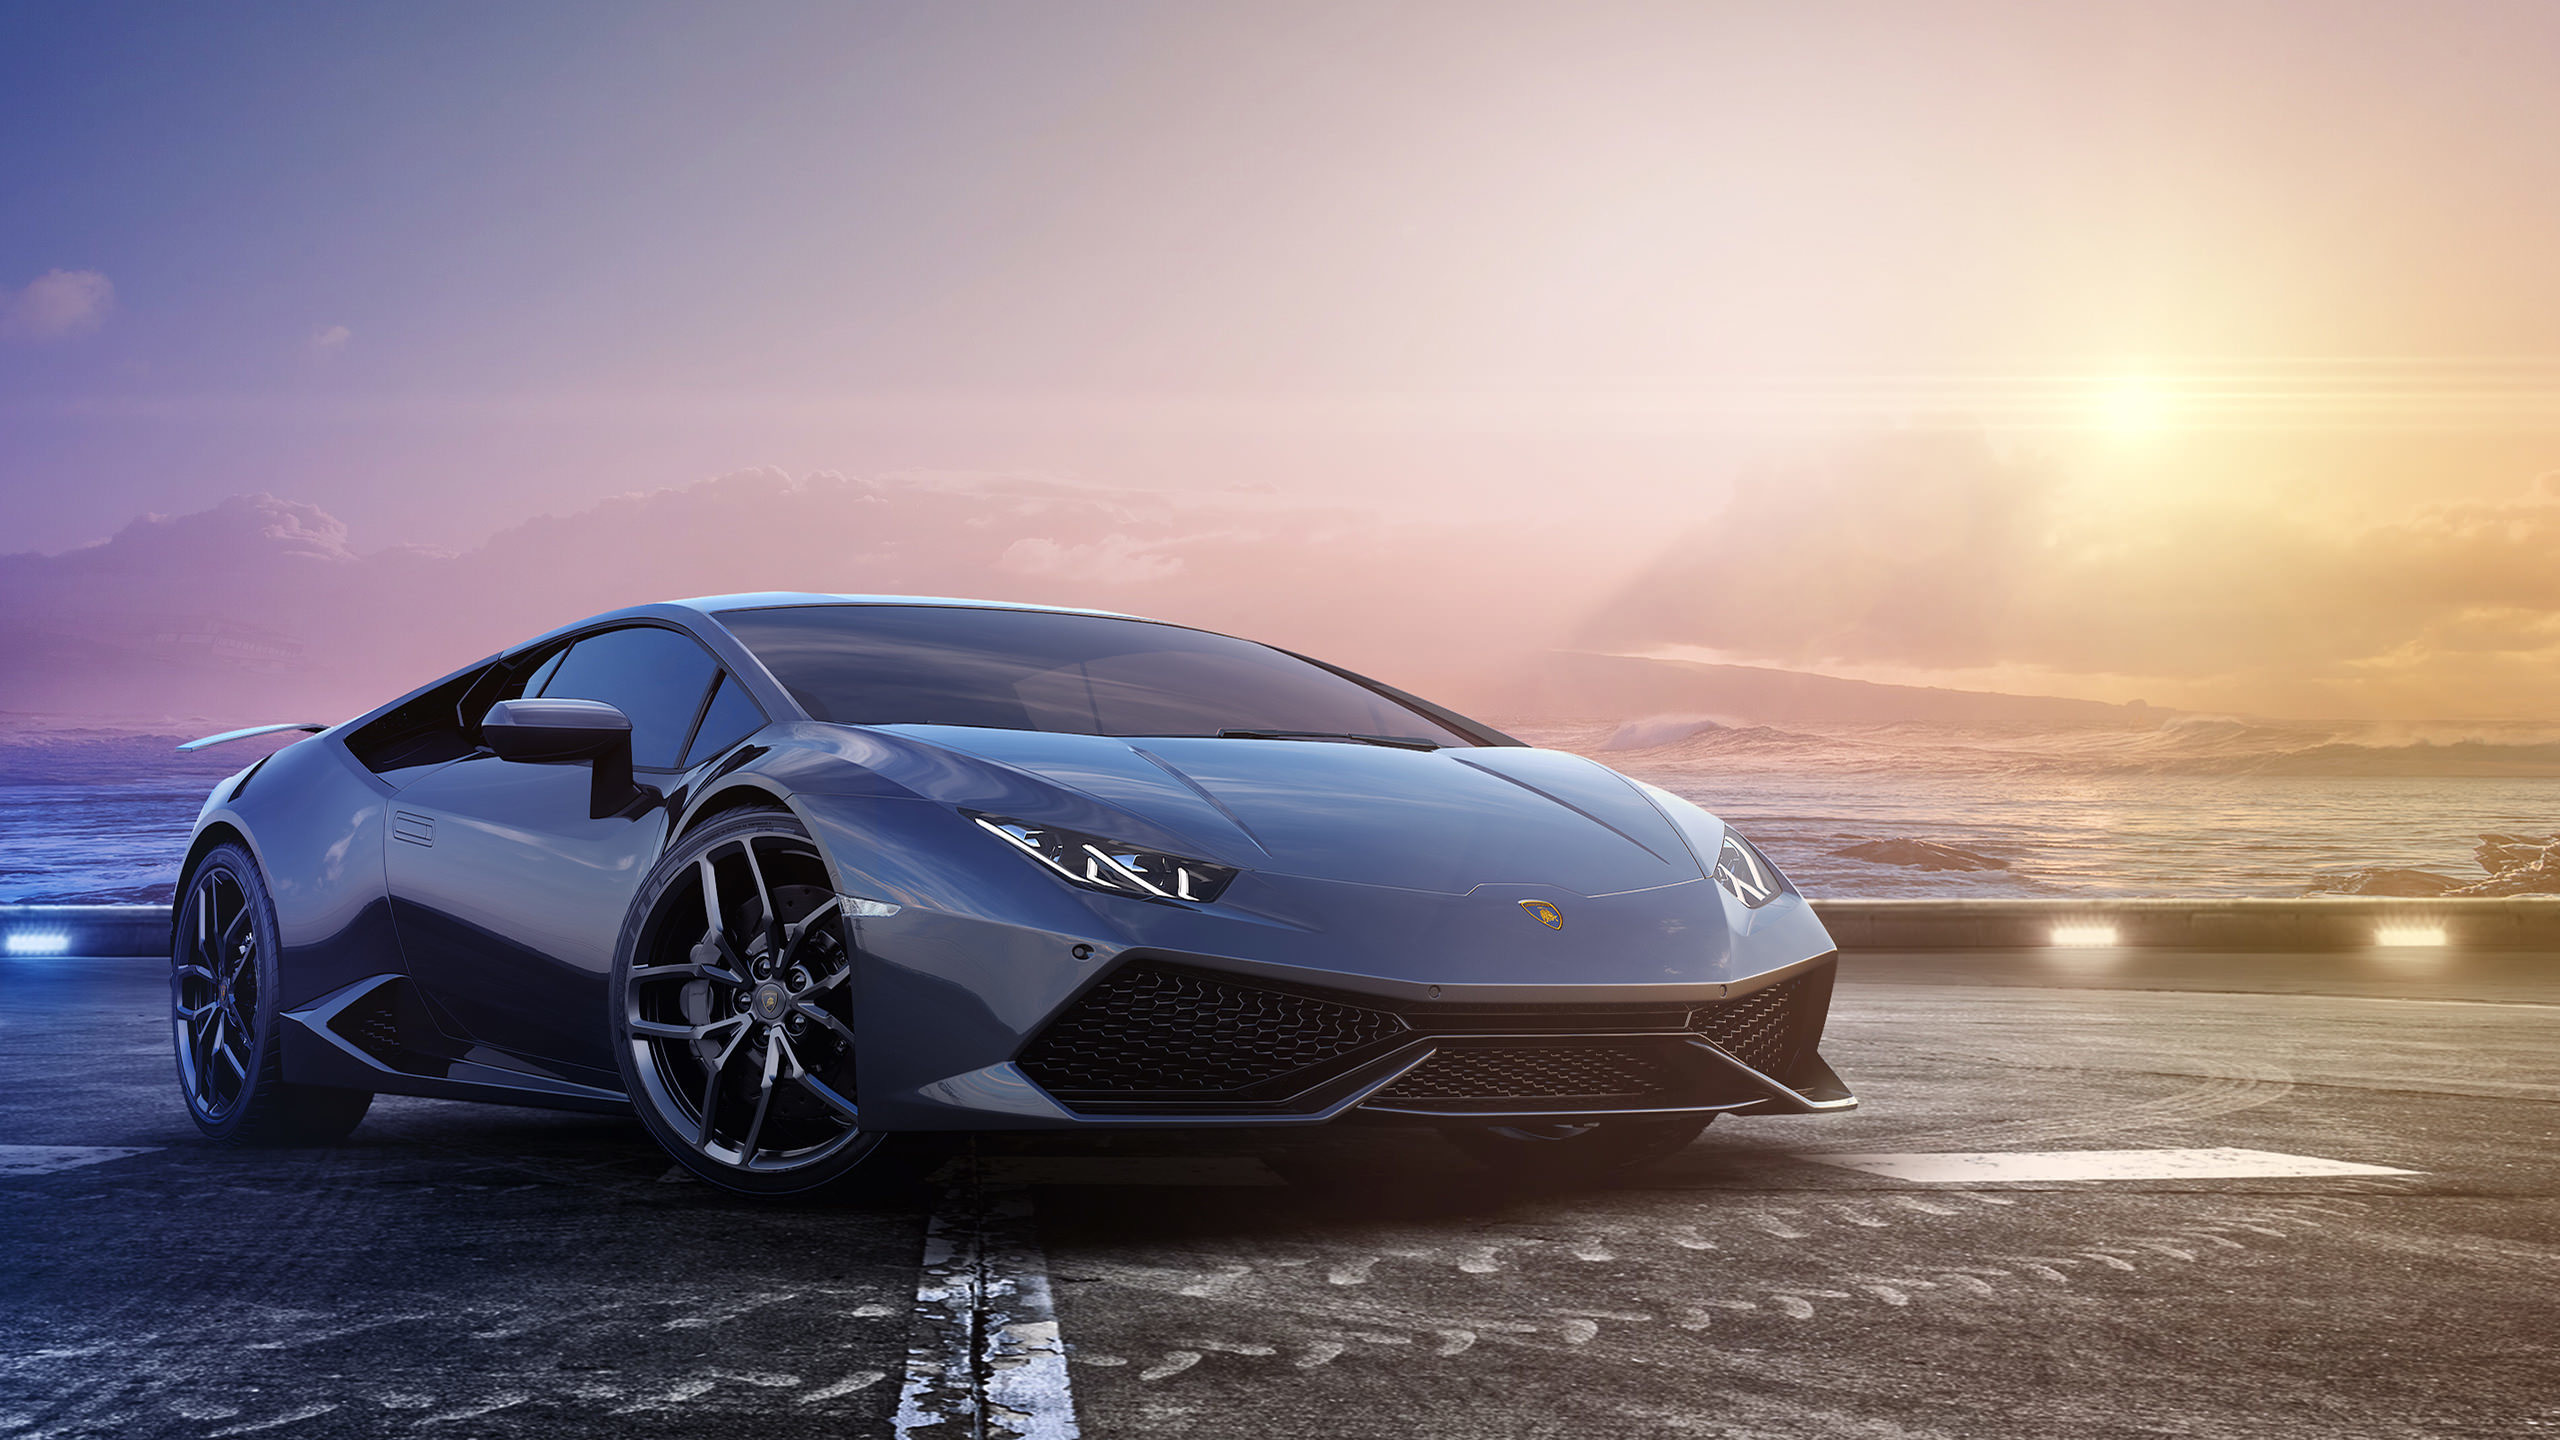 Lamborghini Wallpaper HD New Tab Lambo Themes Free